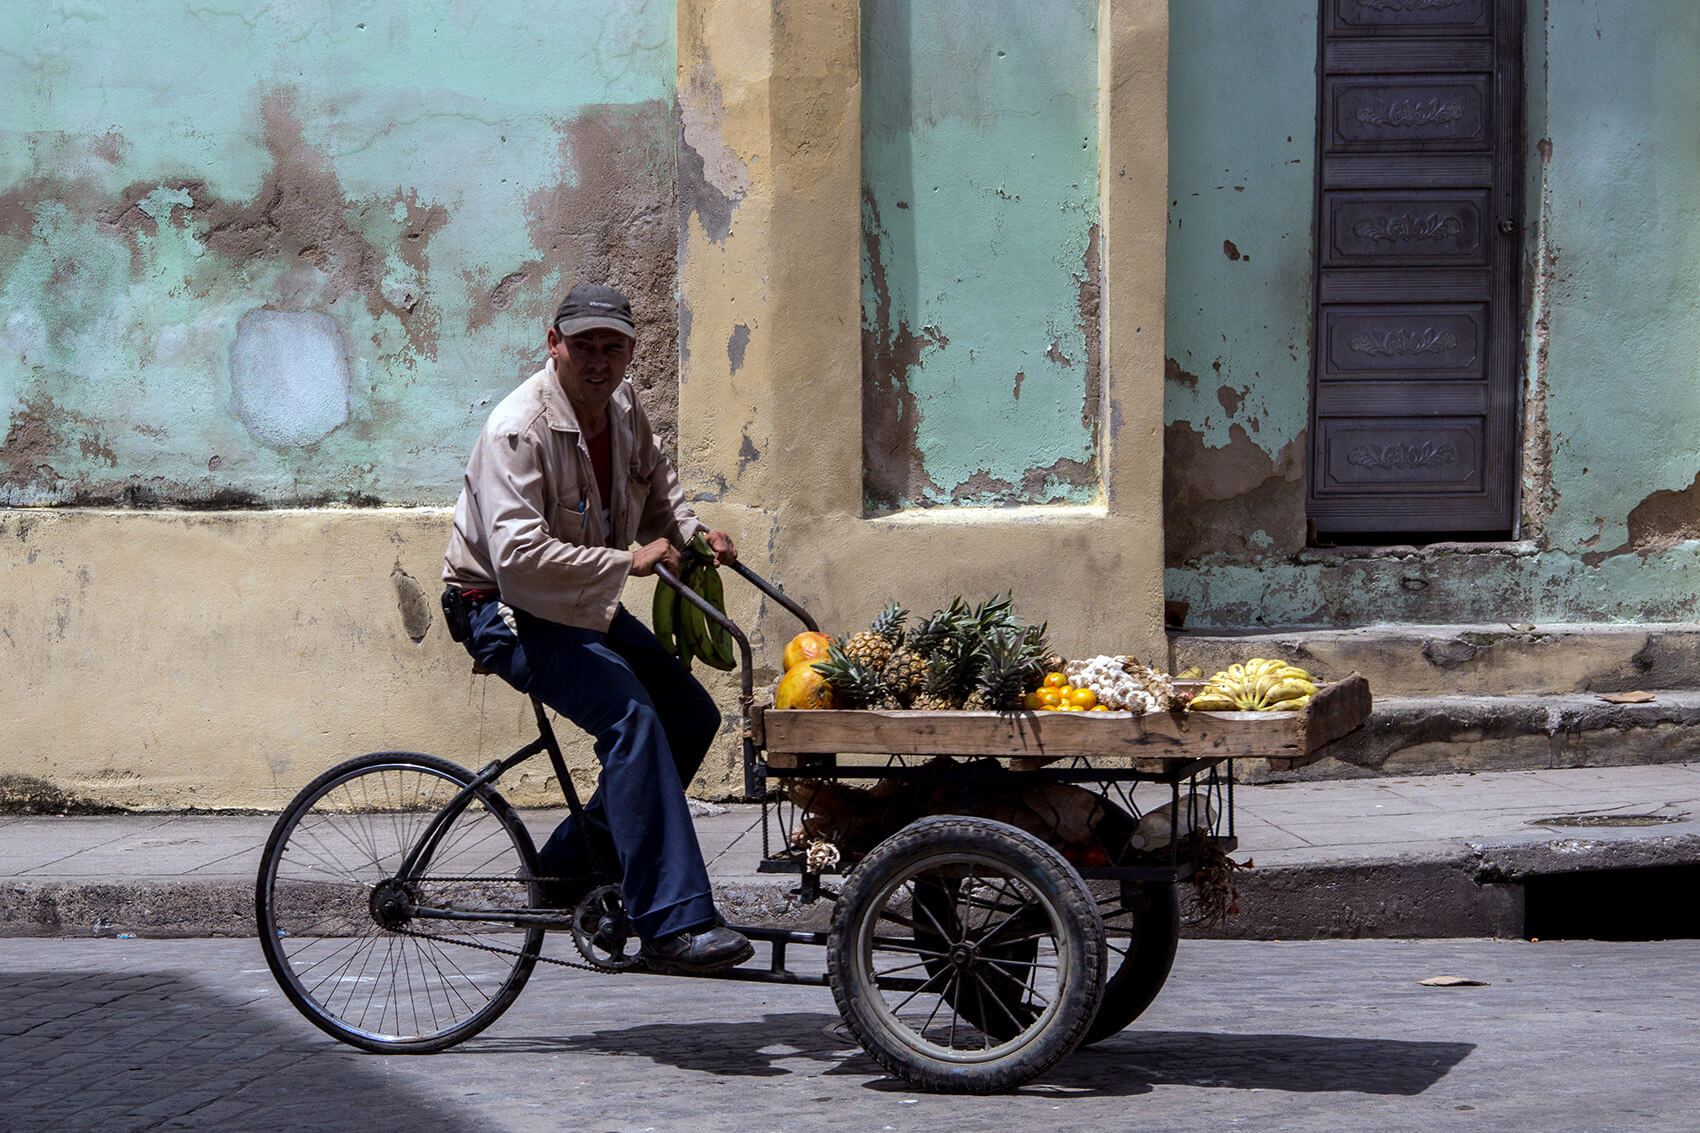 Fruit vendor in Camagüey